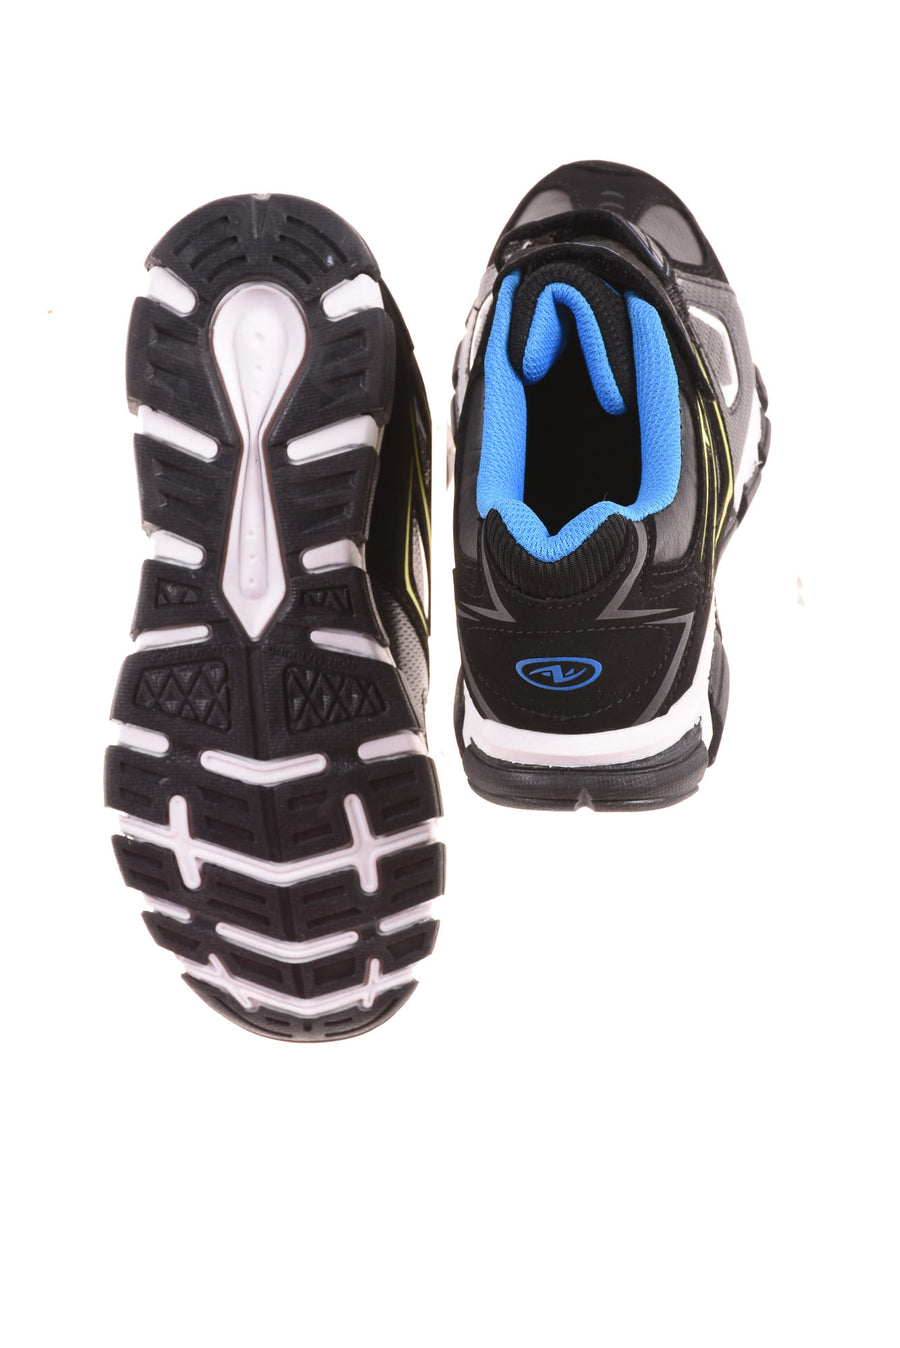 USED Athletic Works Boy's Shoes 4 Black & Blue